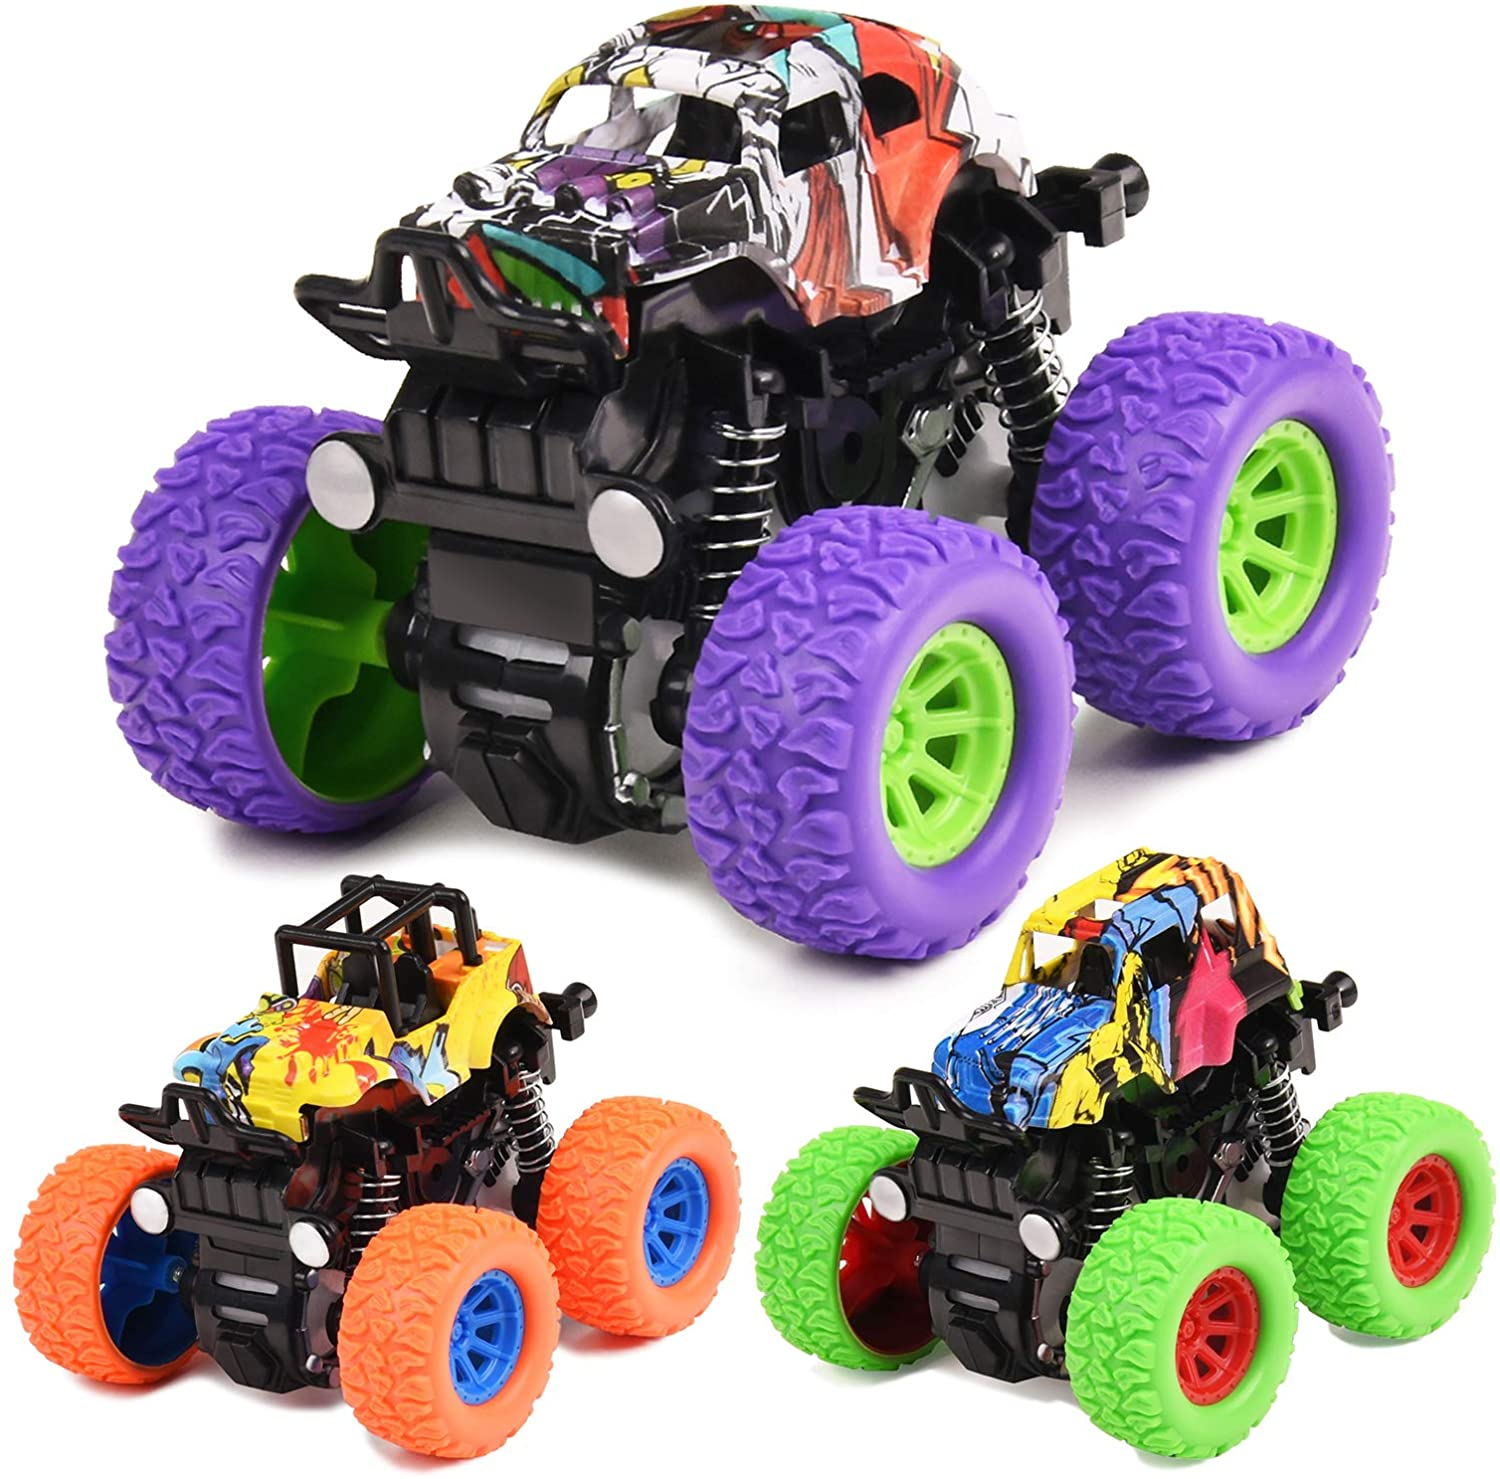 Monster Trucks Toys for Boys 3PCS Inertia Pull Back Toy Cars Friction Powered Vehicles Toys for Boys Girls Toddler 3 4 5 6 7 8 Year Old Kids Birthday Christmas Toys Gifts (Purple, Green, Orange)